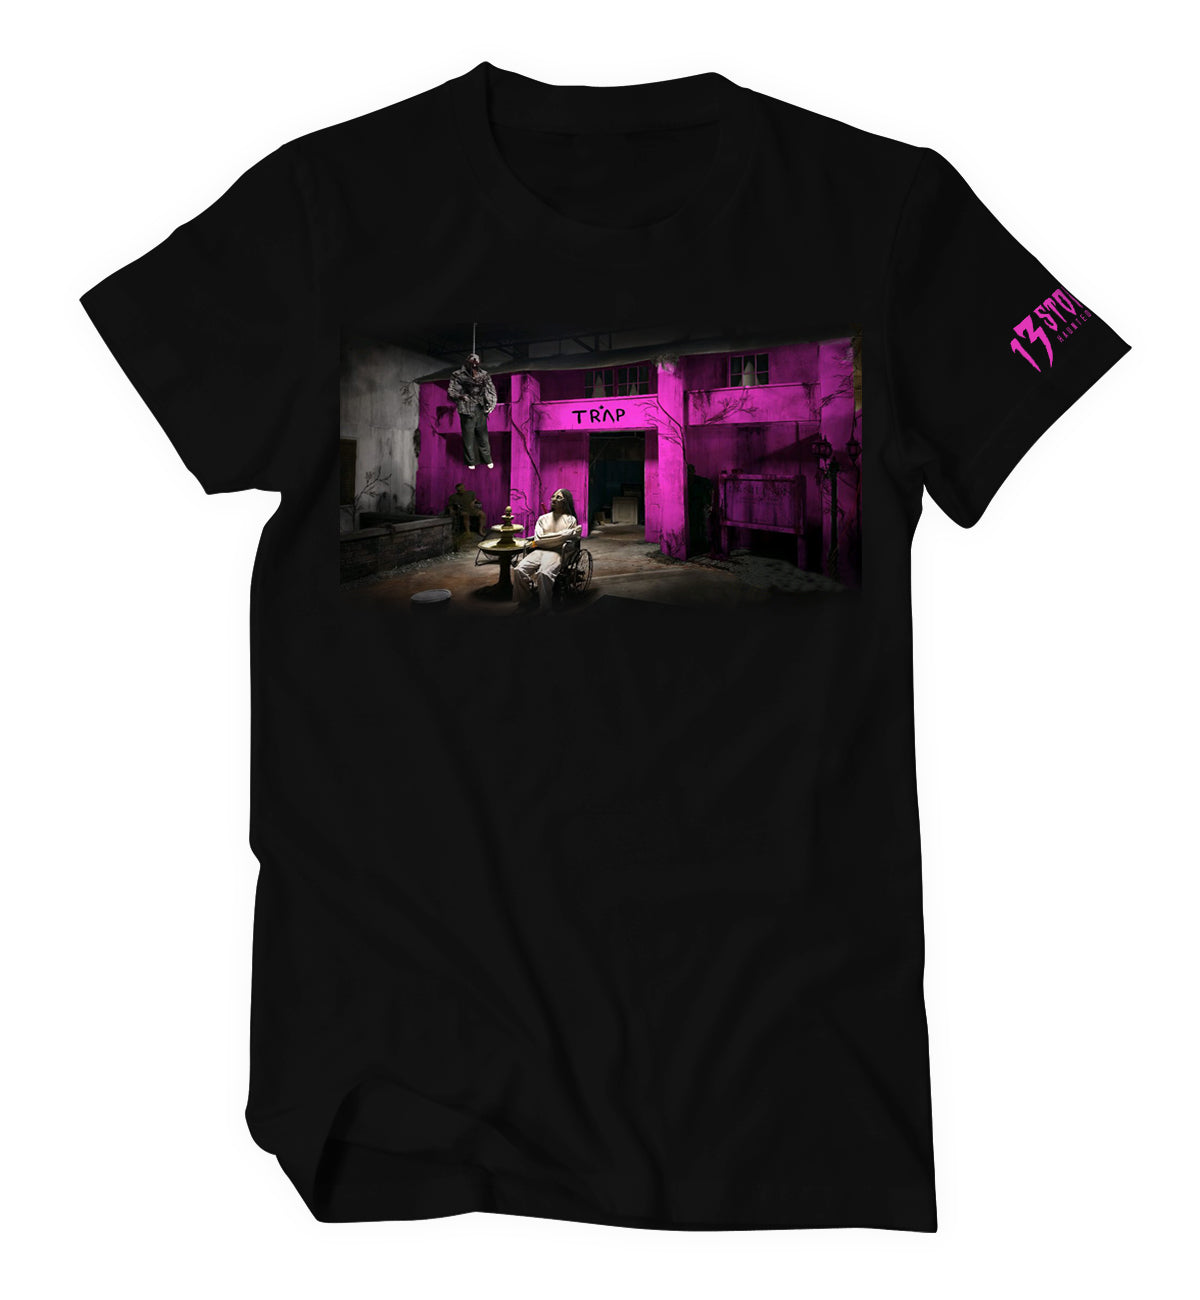 Haunted Pink Trap House Shirt